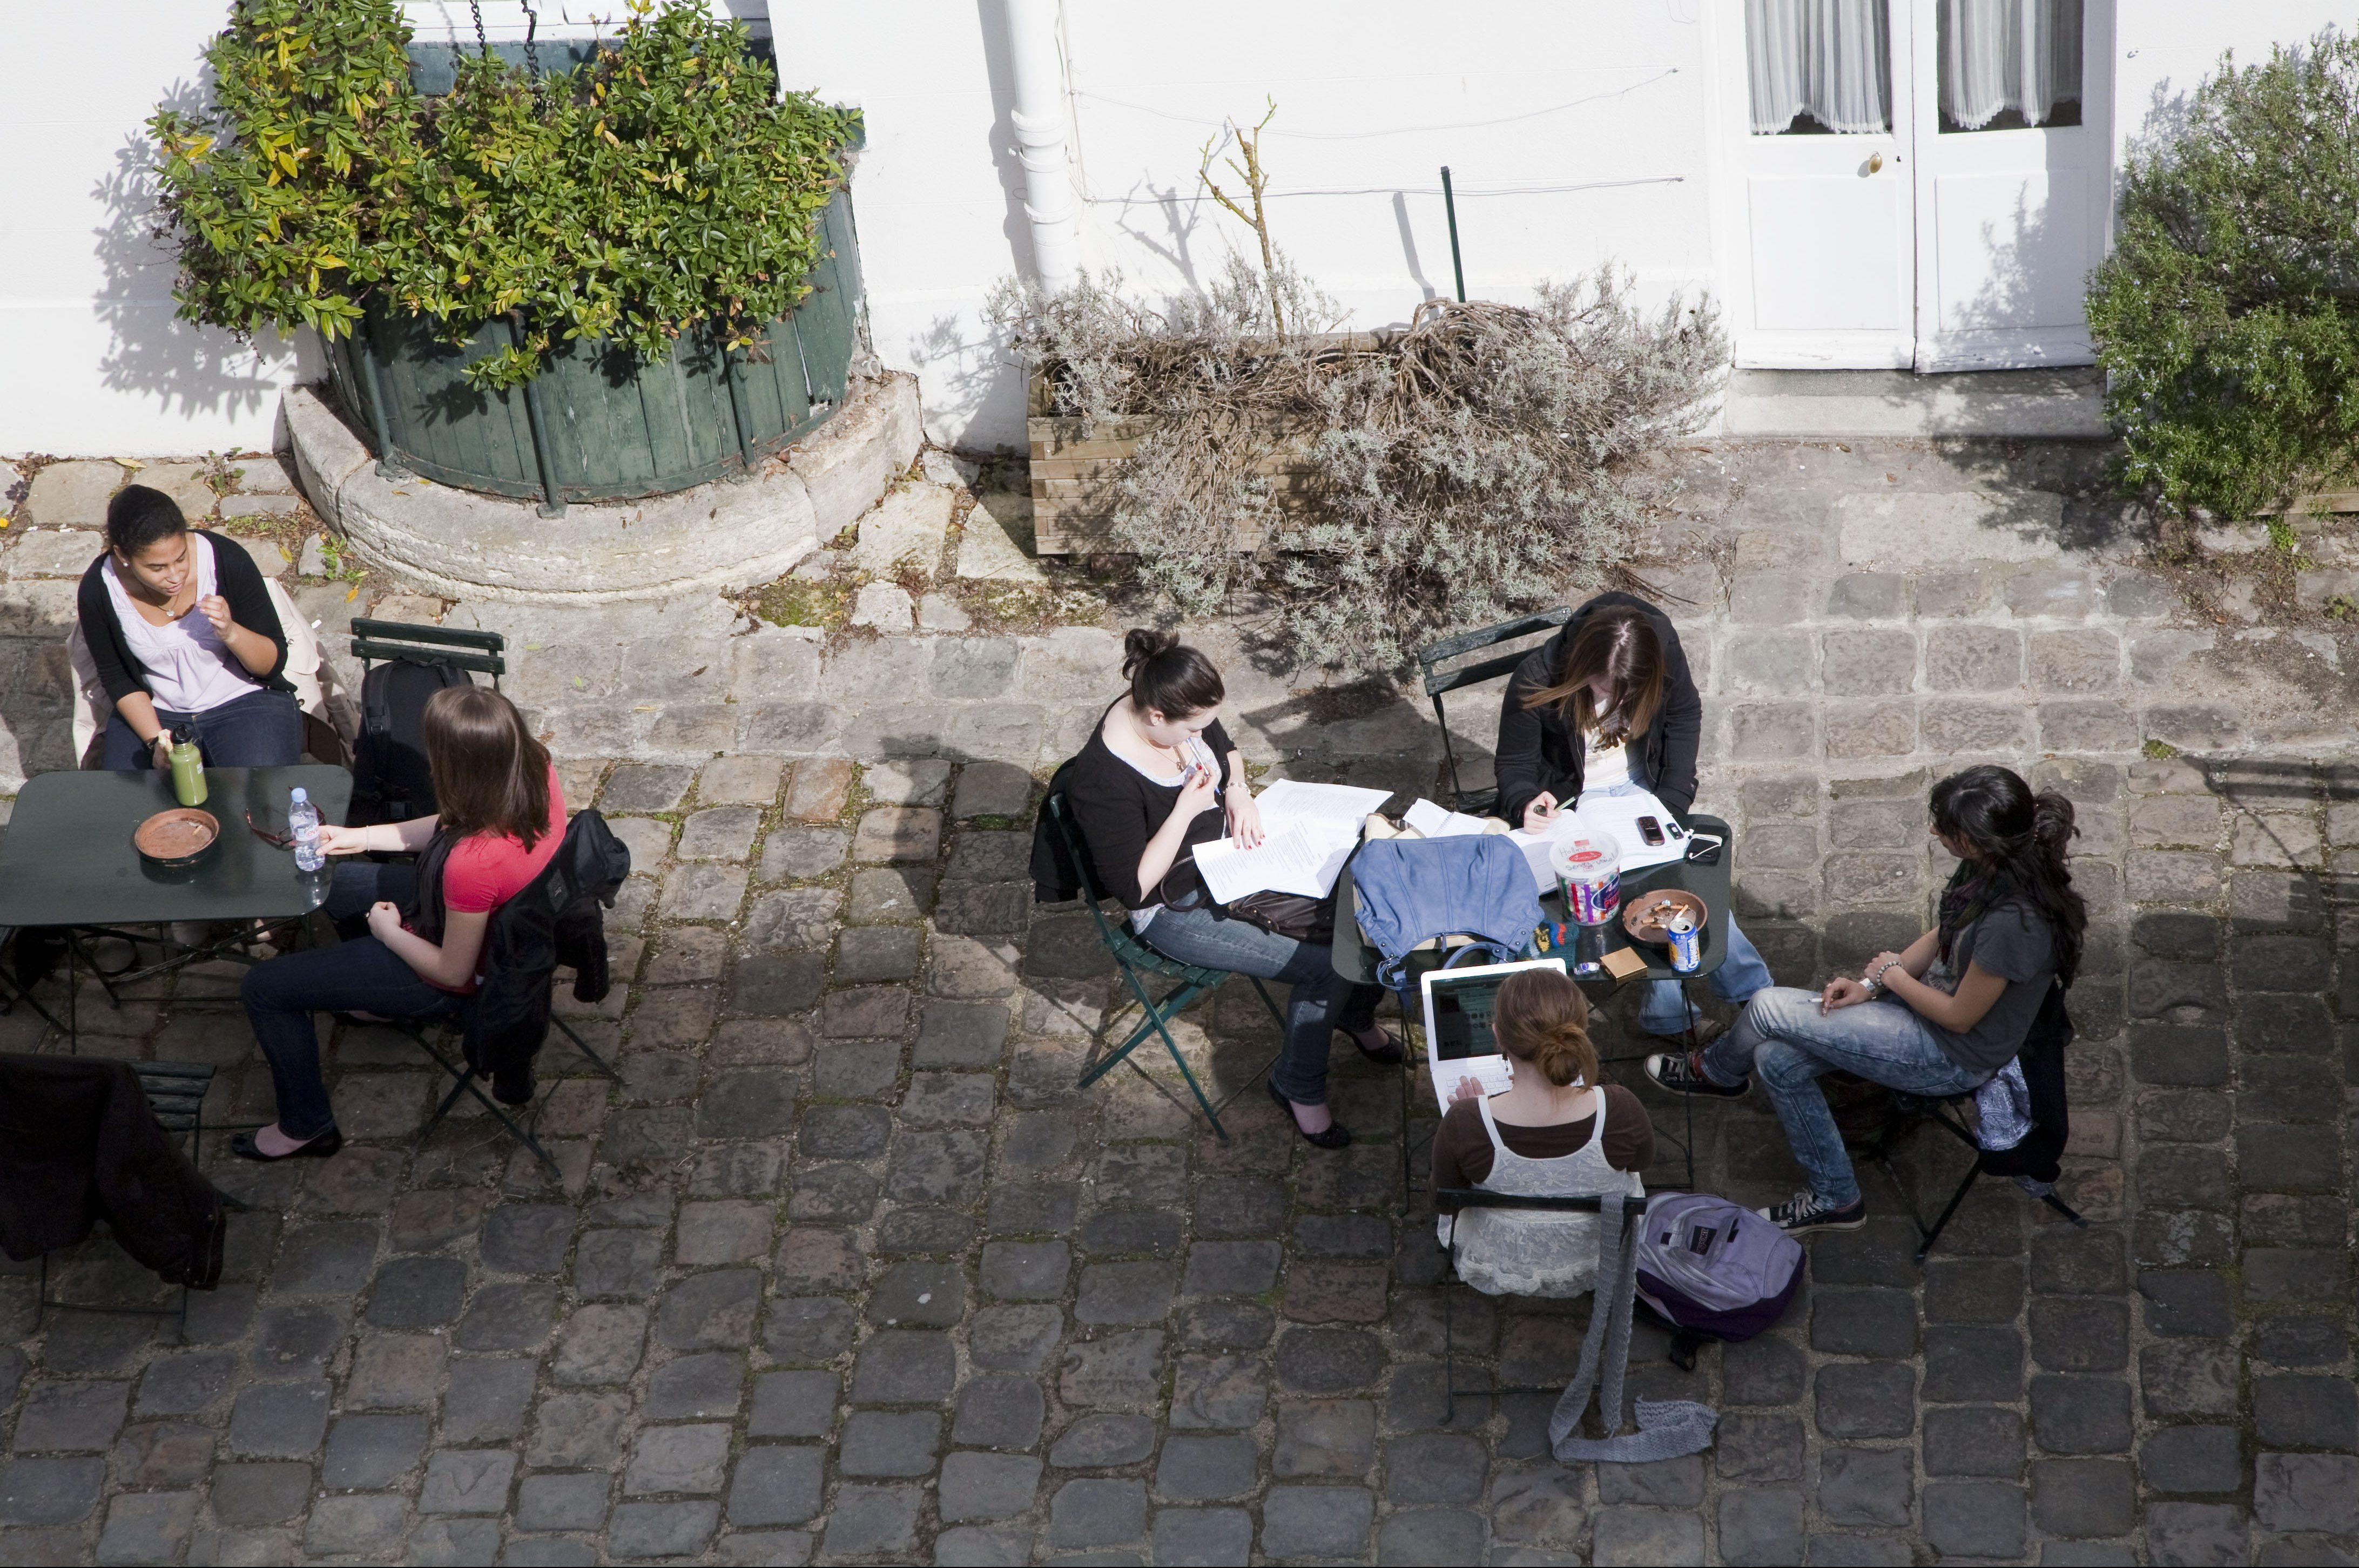 Students studying at University of Kent Paris Centre